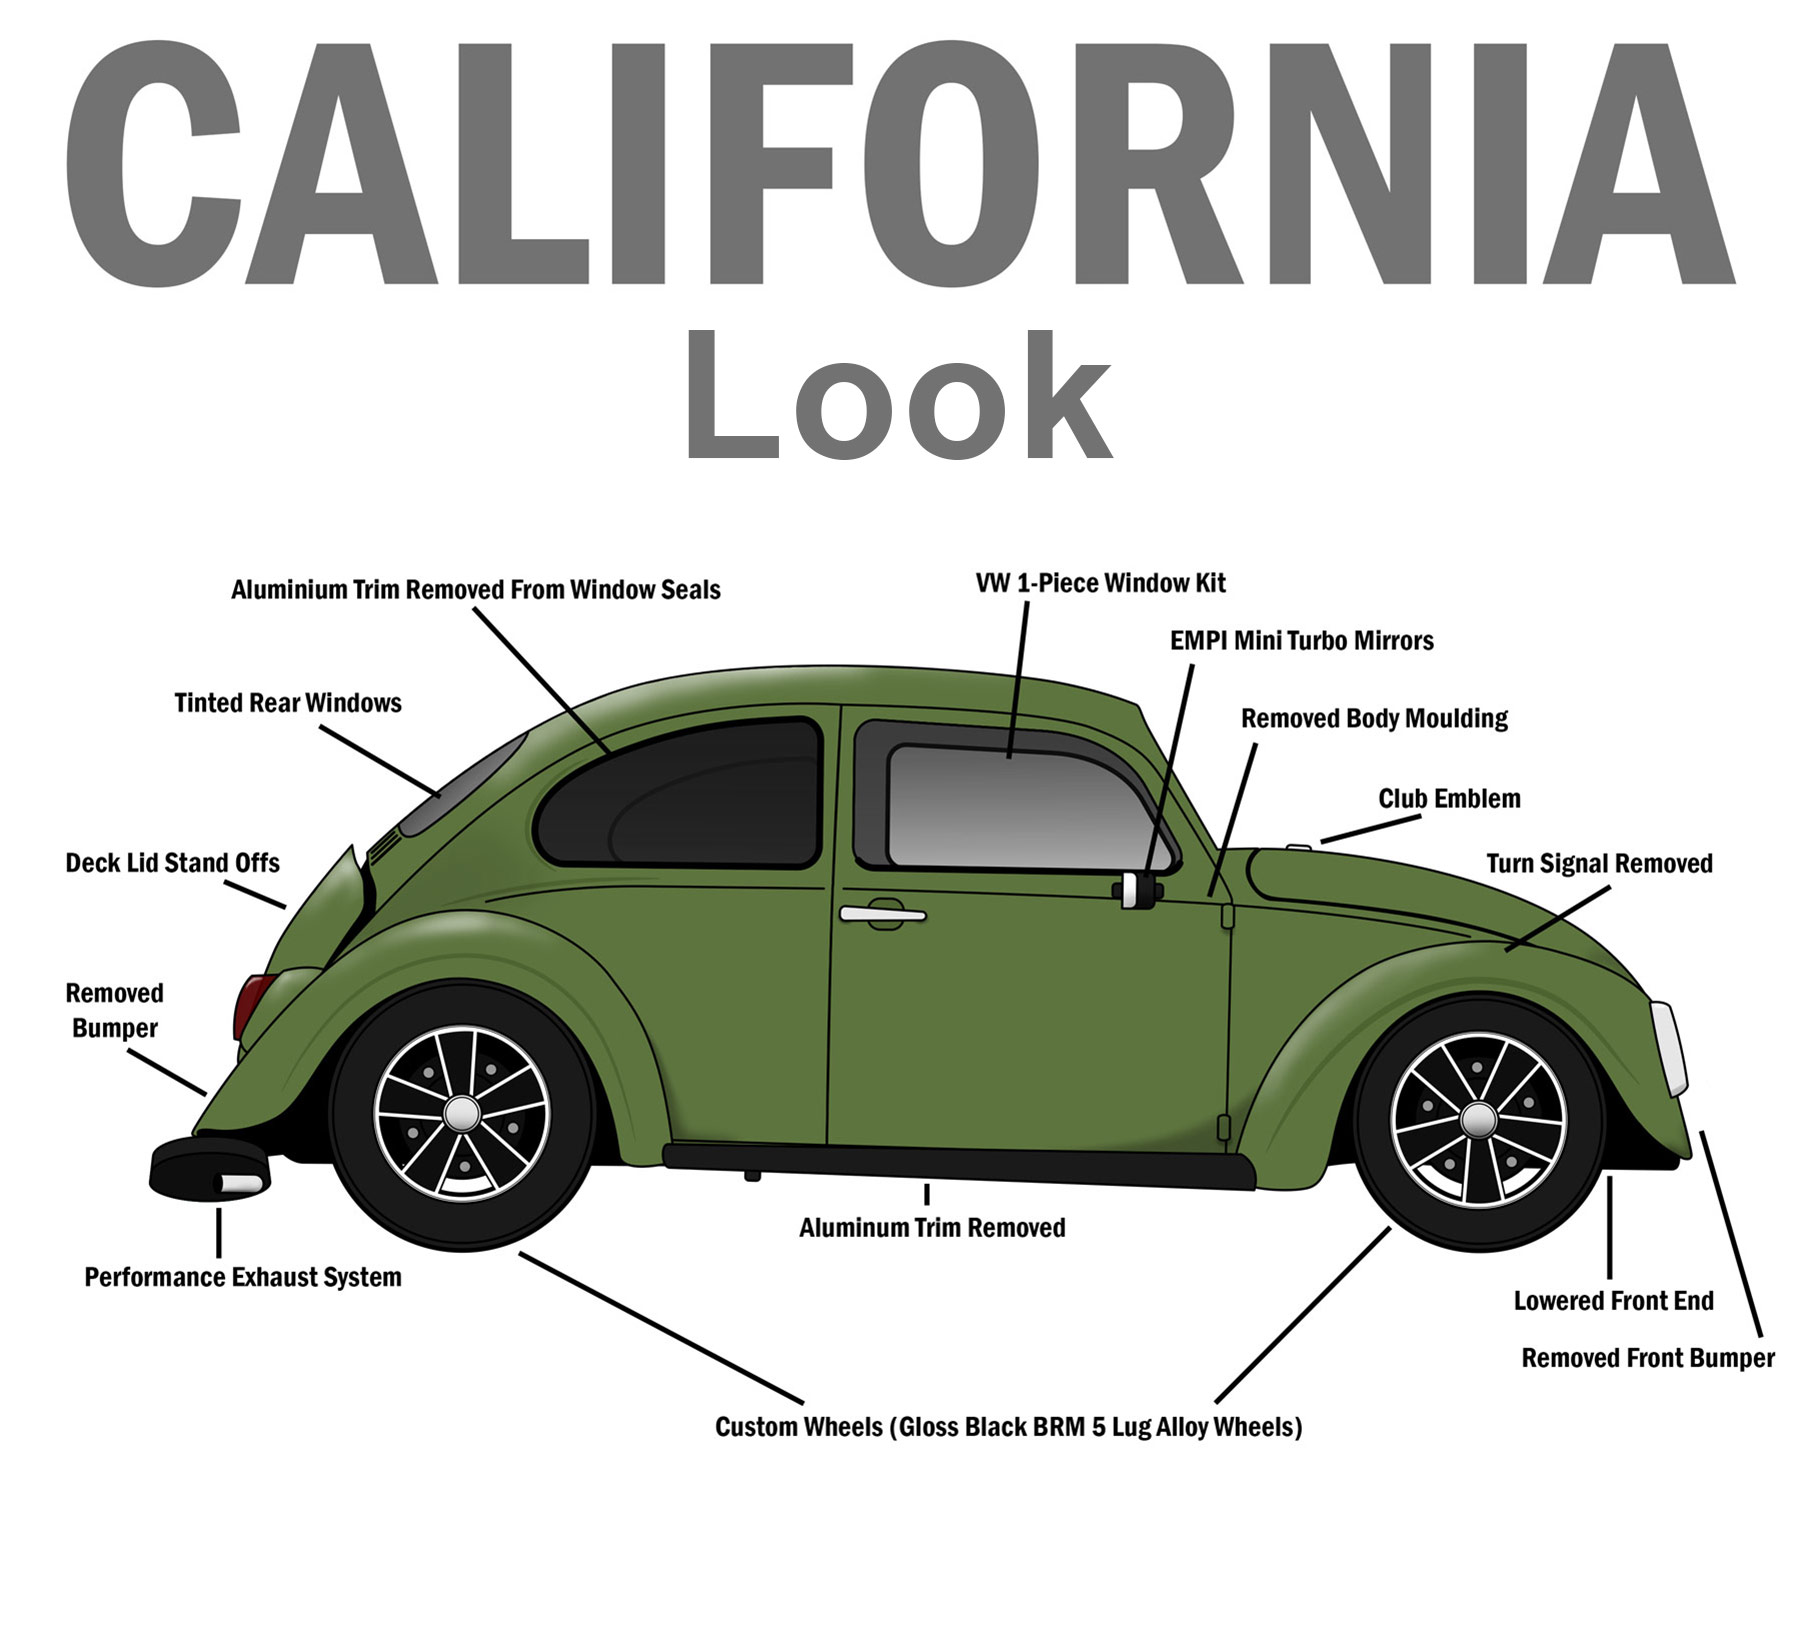 hight resolution of a california looker is a air cooled vw modified to a popular fashion which originated in 1960 s orange county california